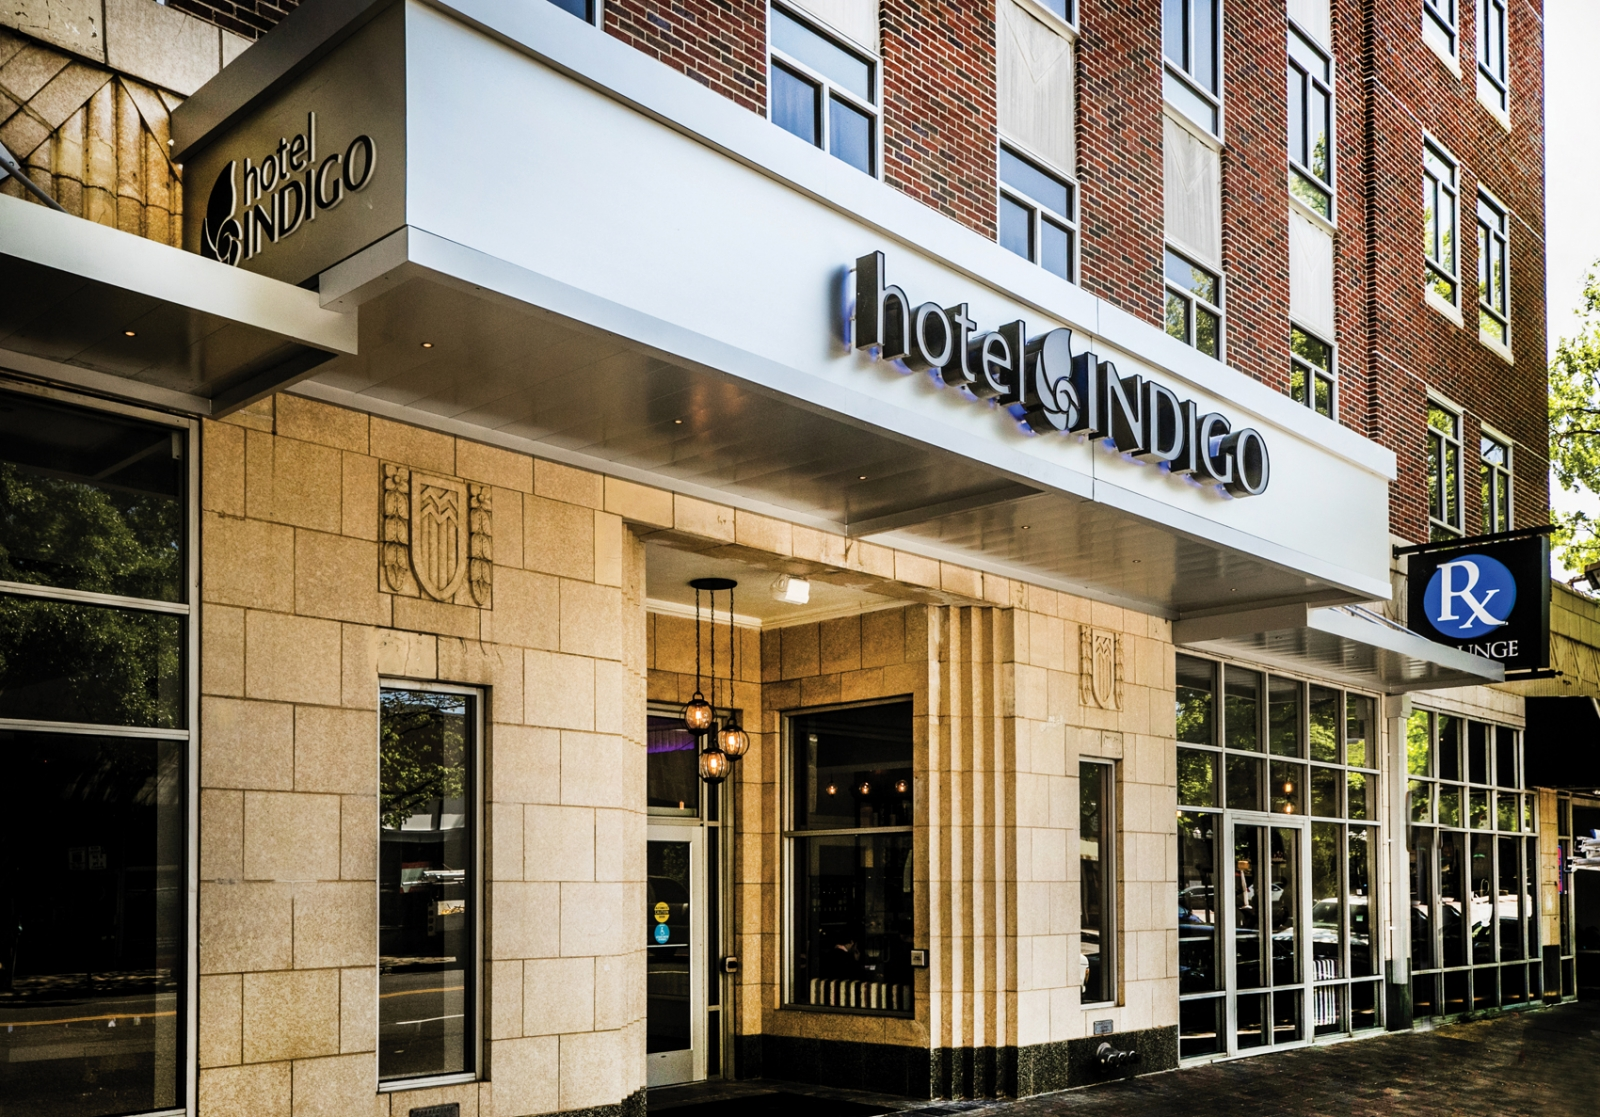 5 Reasons To Visit Hotel Indigo In Five Points